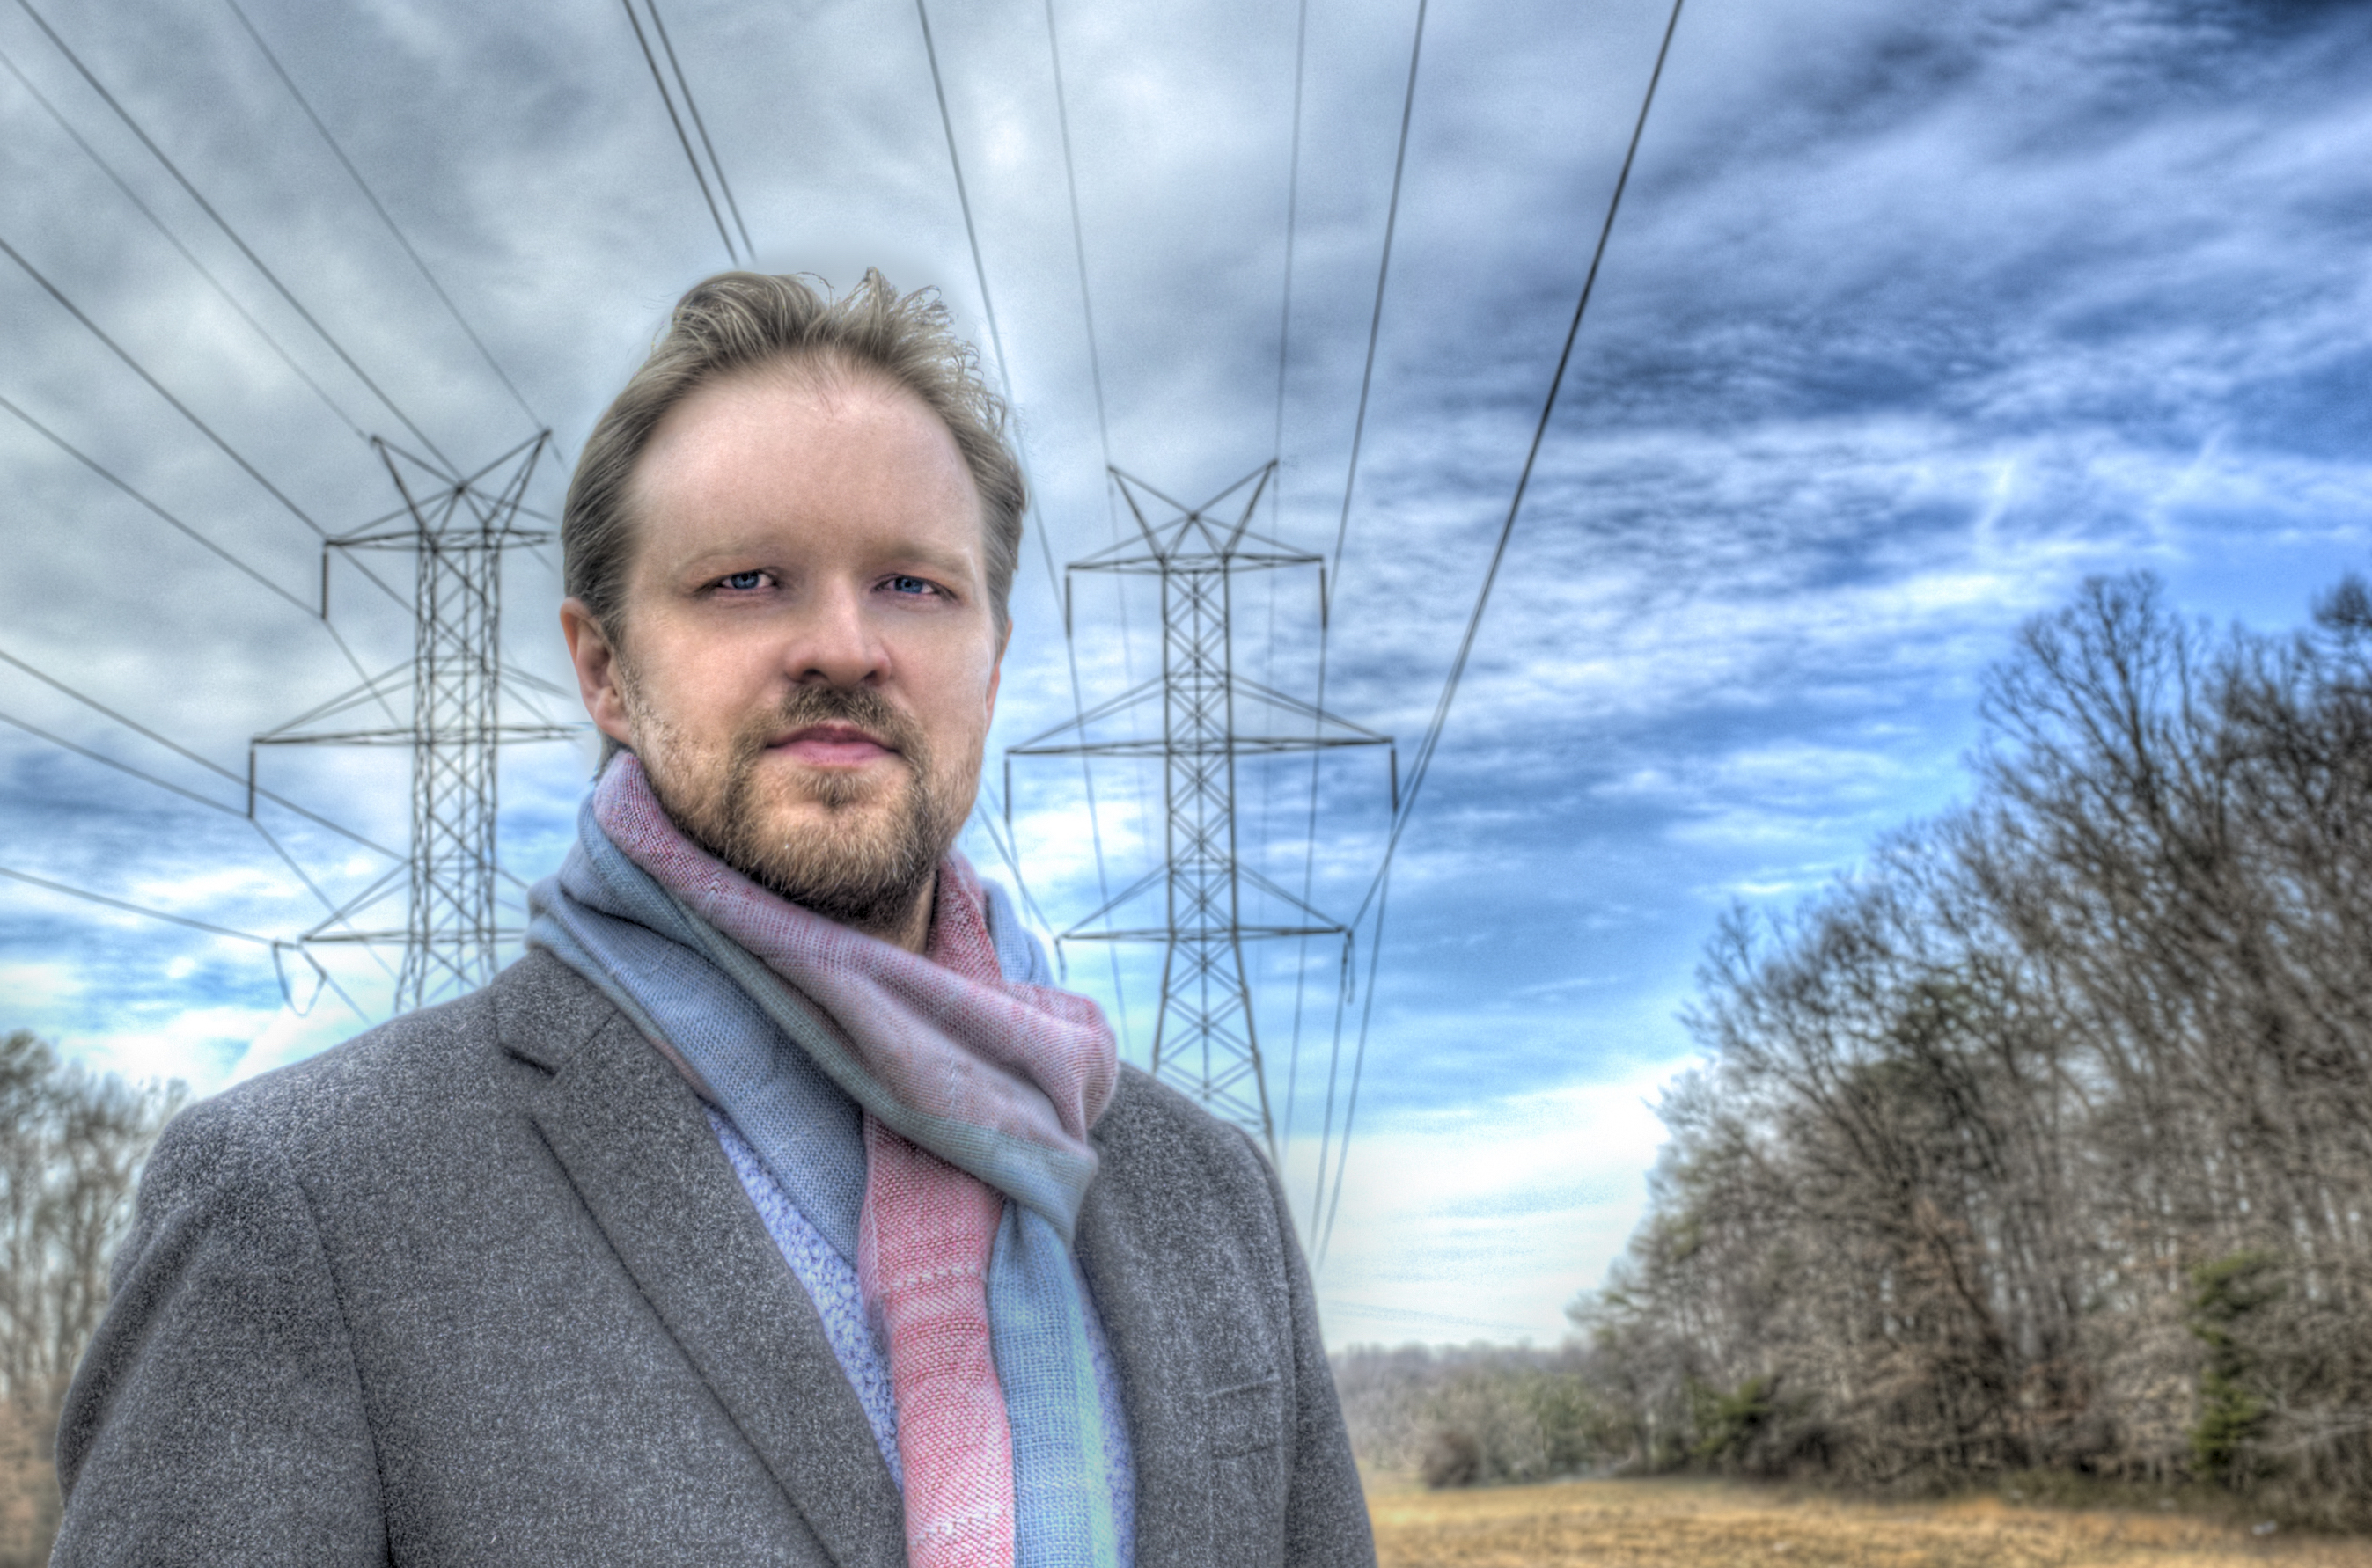 Photo of Antti Pulkkinen standing under power lines